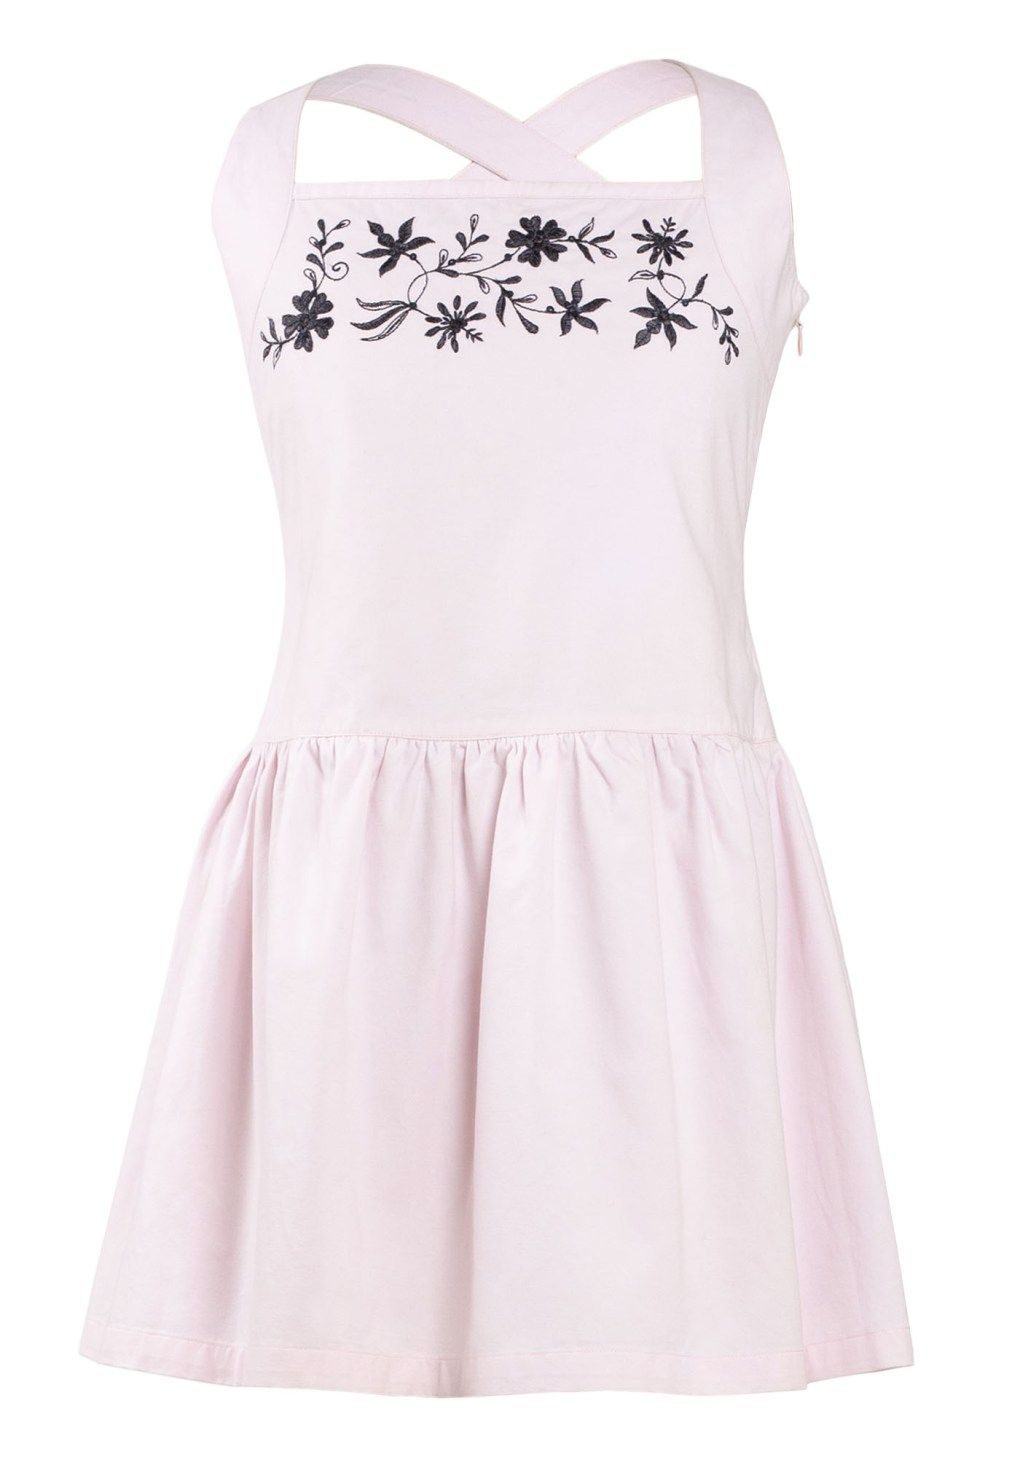 MINC Petite Girls Embroidered Halter Dress in Pink Cotton Twill